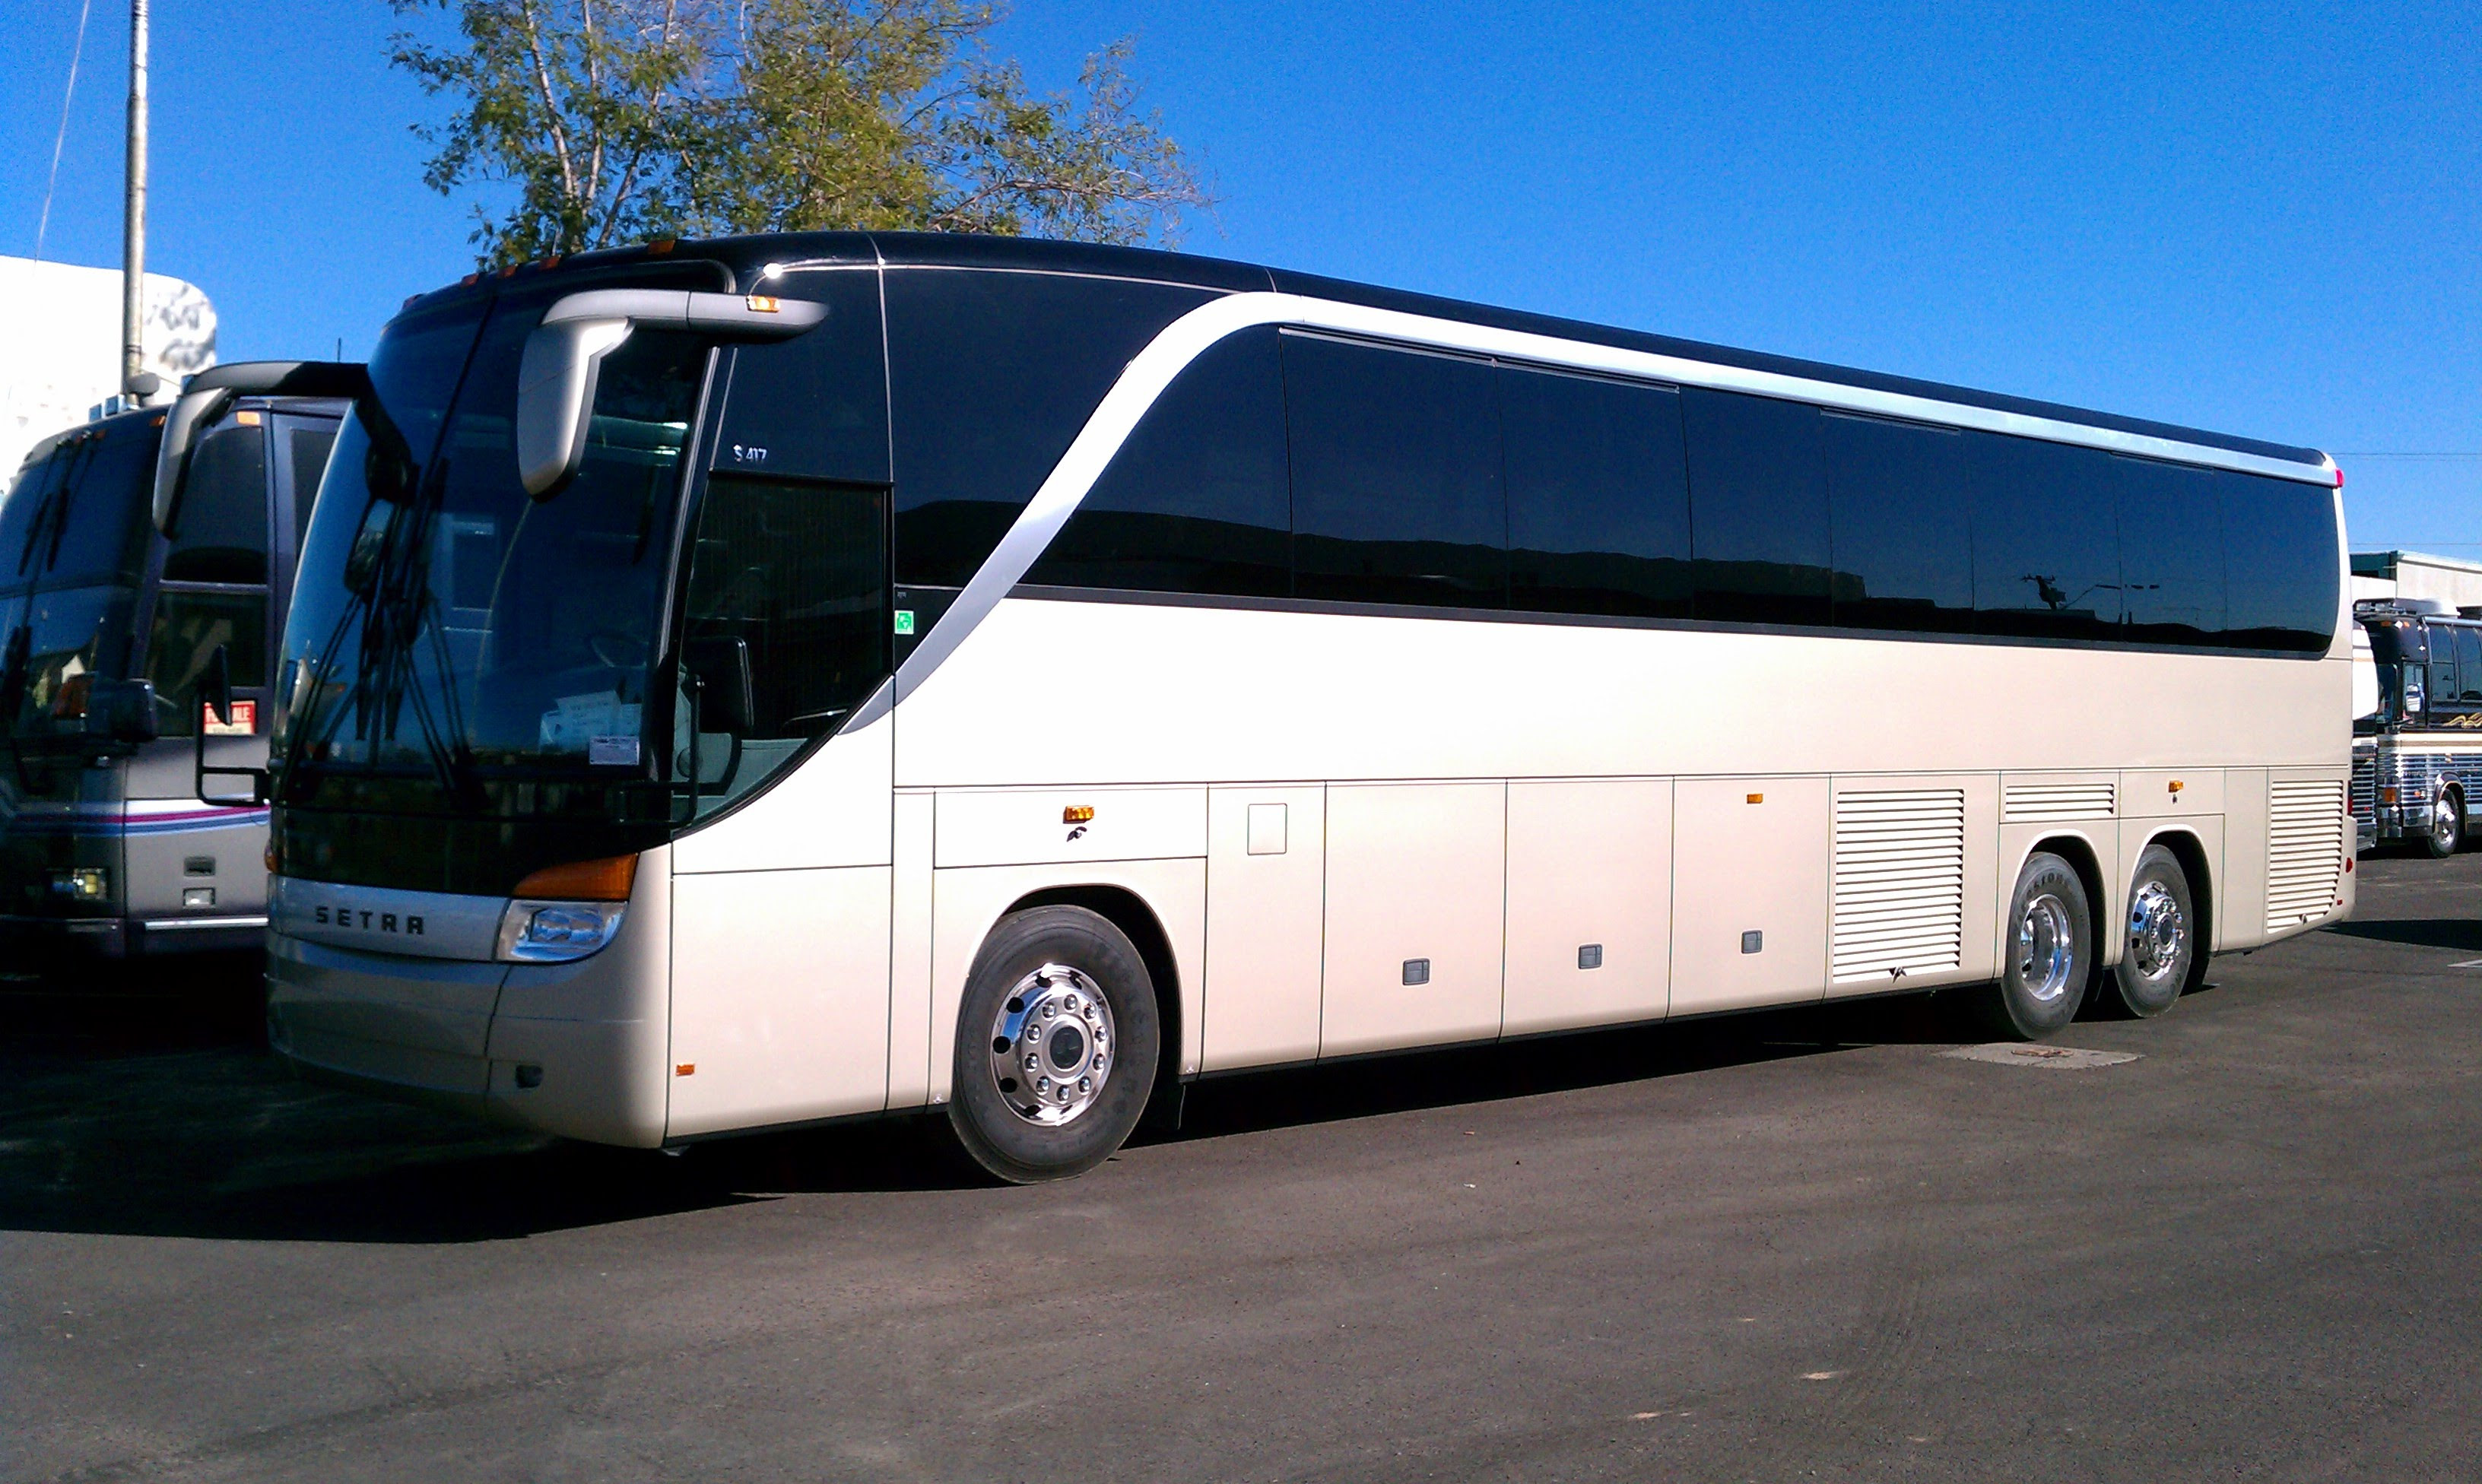 City Tour Bus Services by charter bus / Motor coach buses